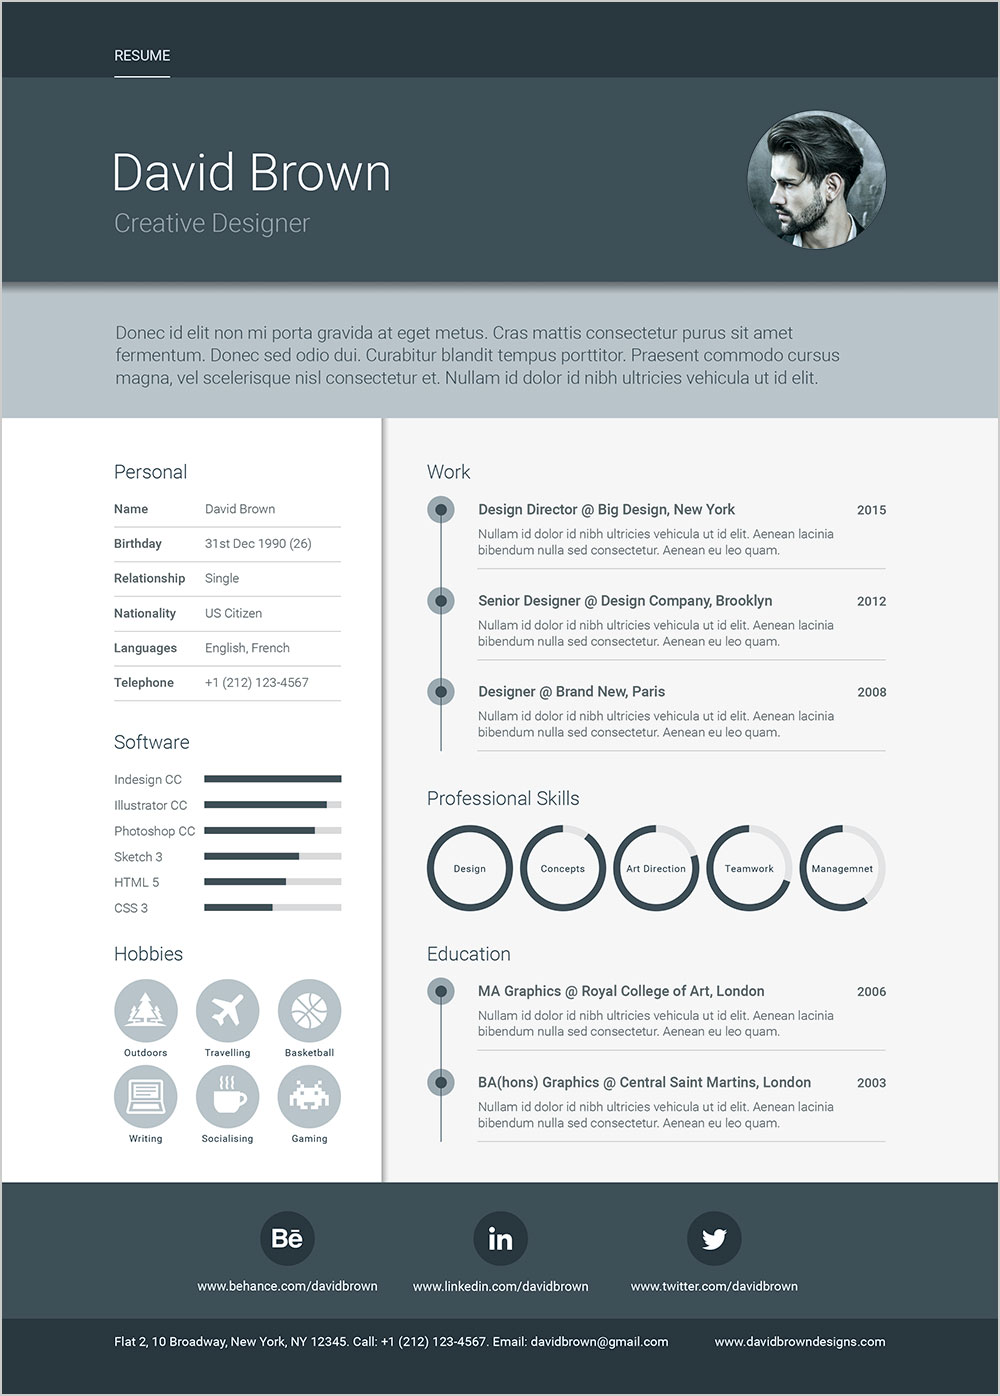 Free-A4-Material-Resume-Design-Template-in-PSD,-Ai-&-INDD-2